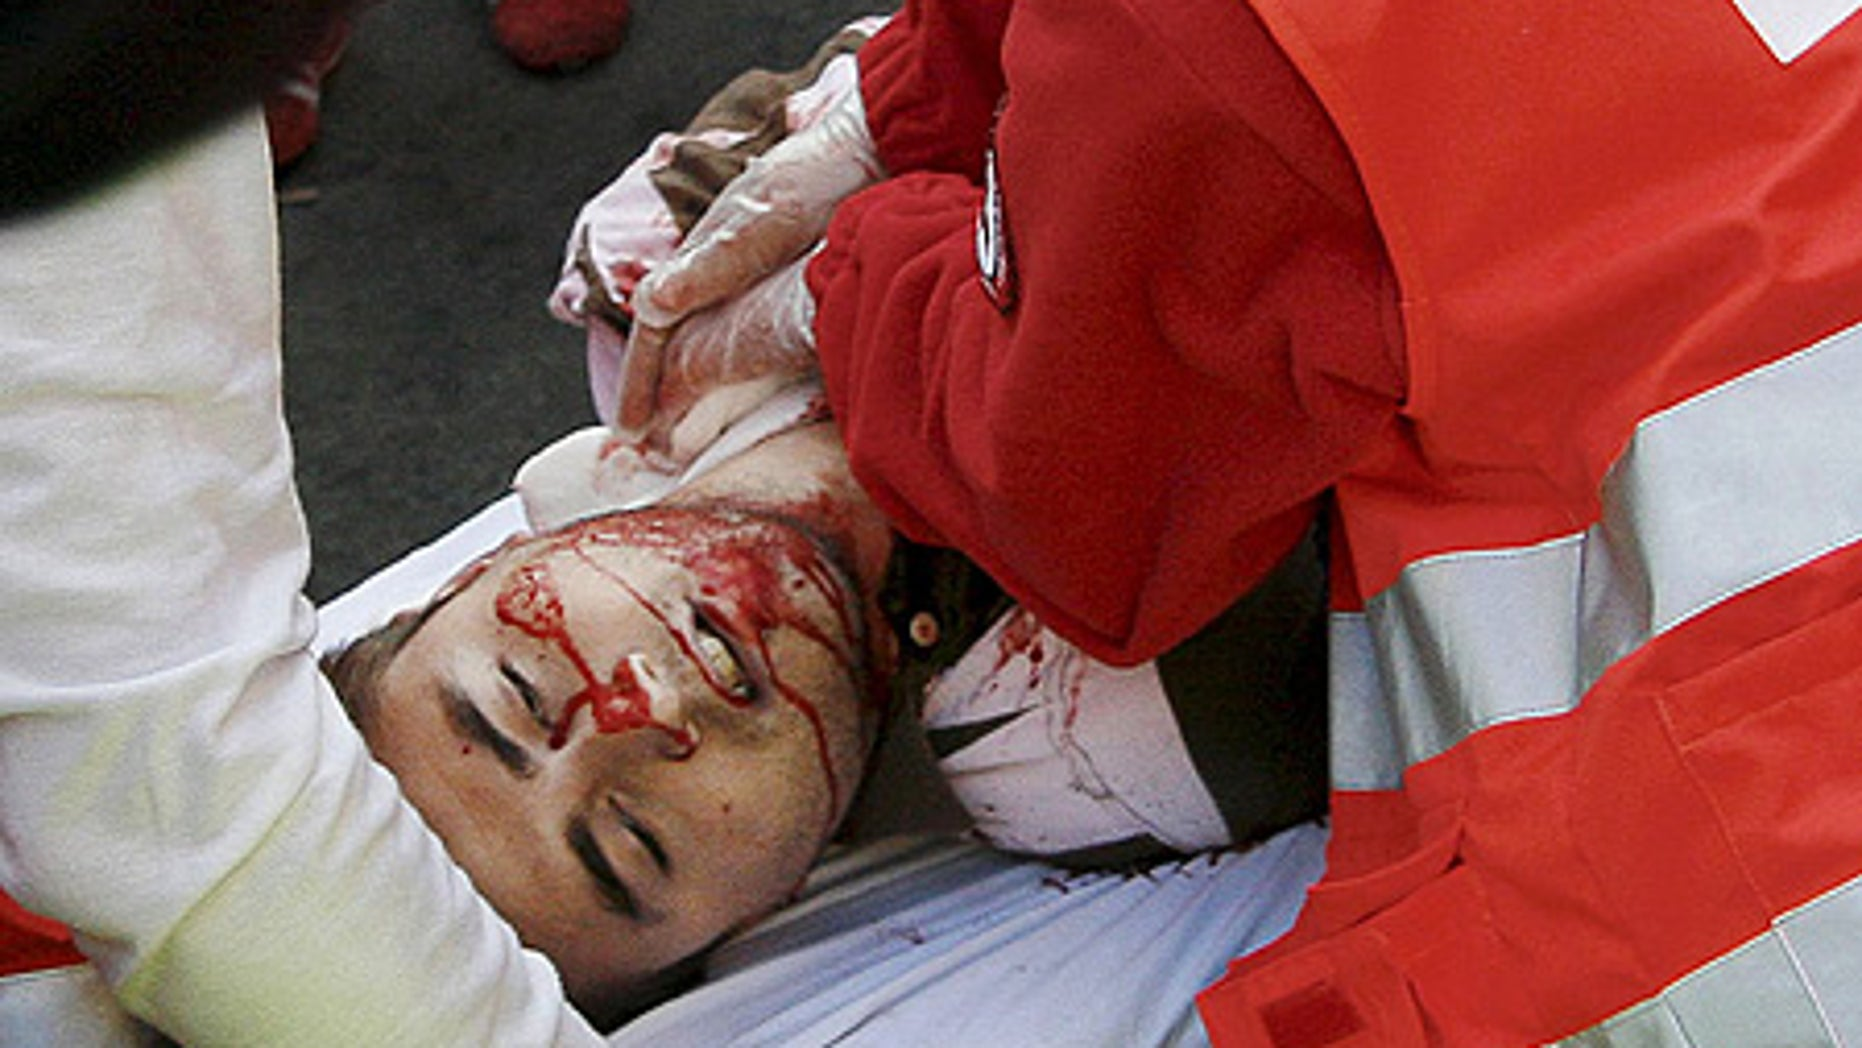 July 10: A reveler is taken away on a stretcher after being gored in the neck by a bull during the run, in Pamplona. He later died at hospital.